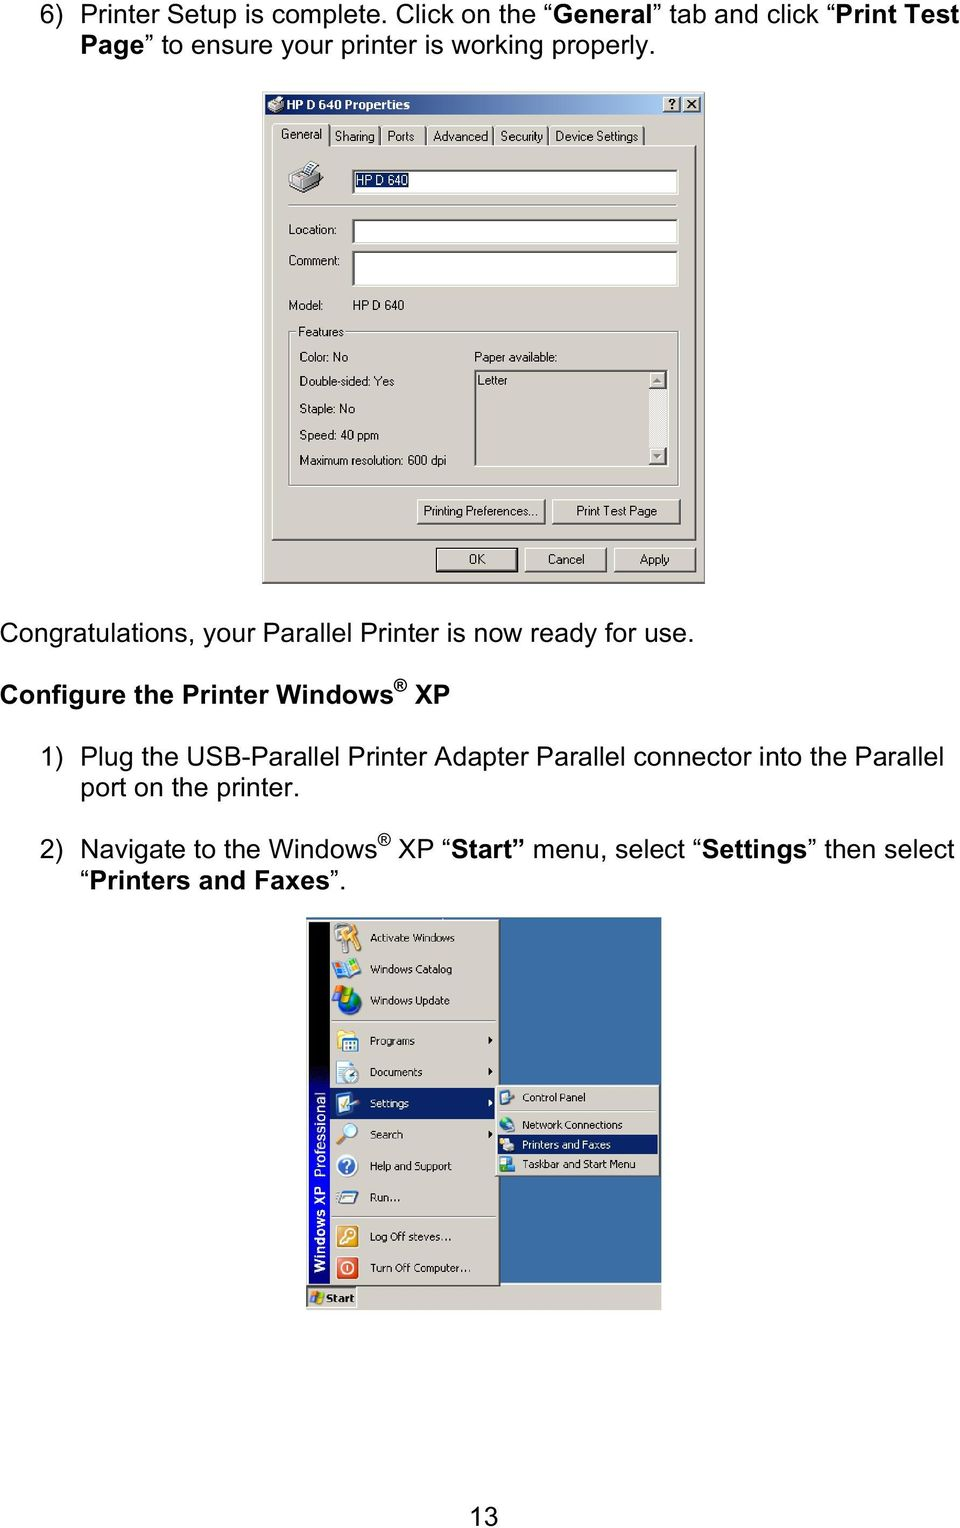 Congratulations, your Parallel Printer is now ready for use.